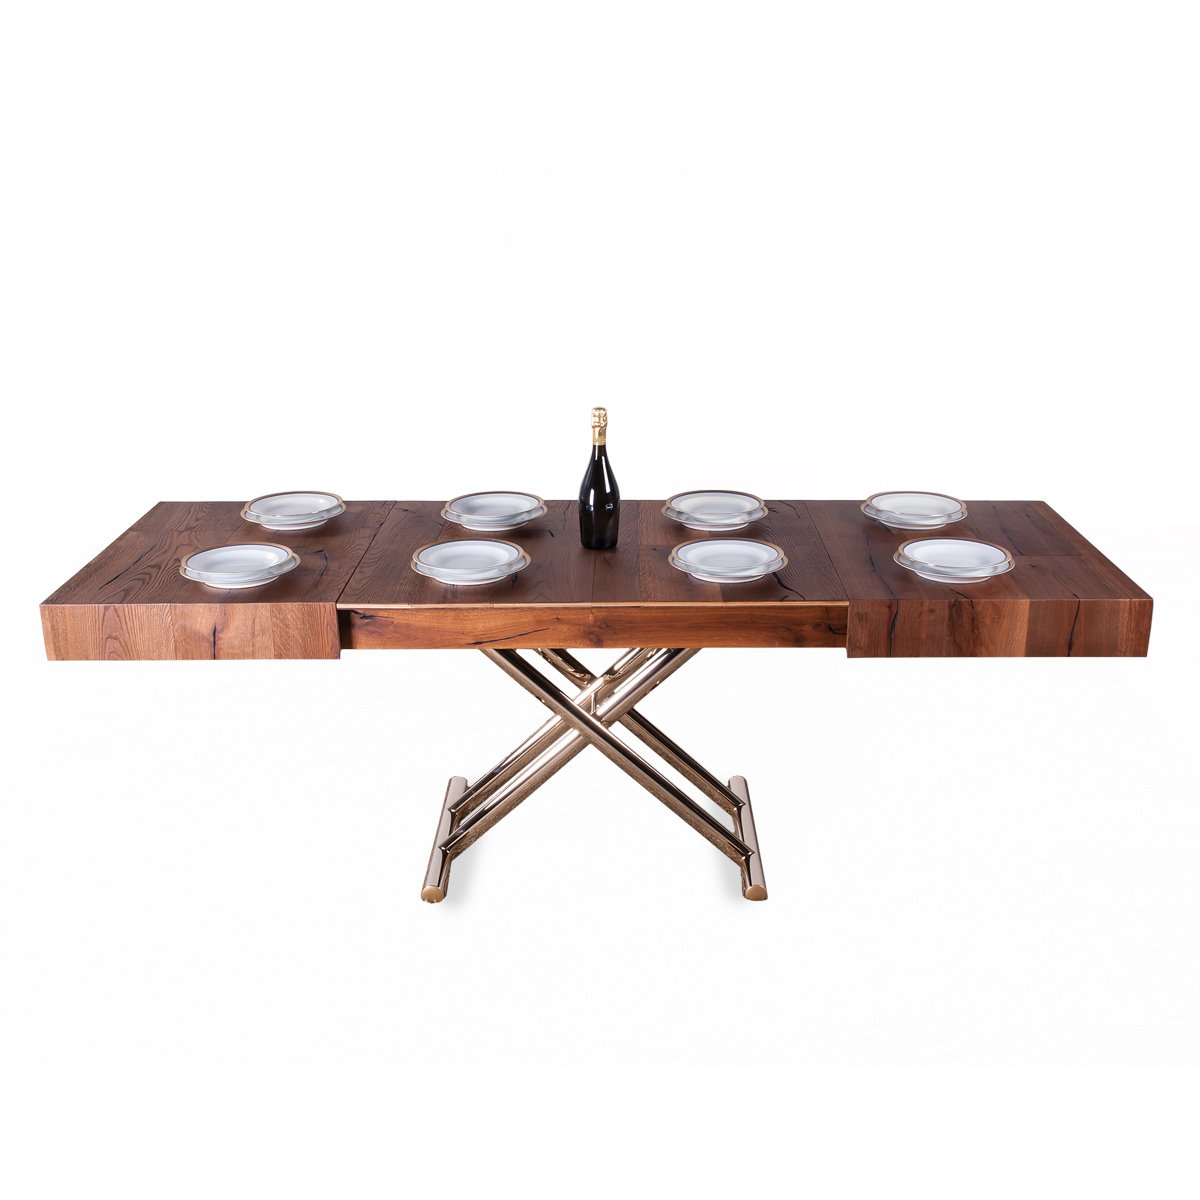 Table basse relevable bois meubles et atmosph re - Verin pour table relevable ...